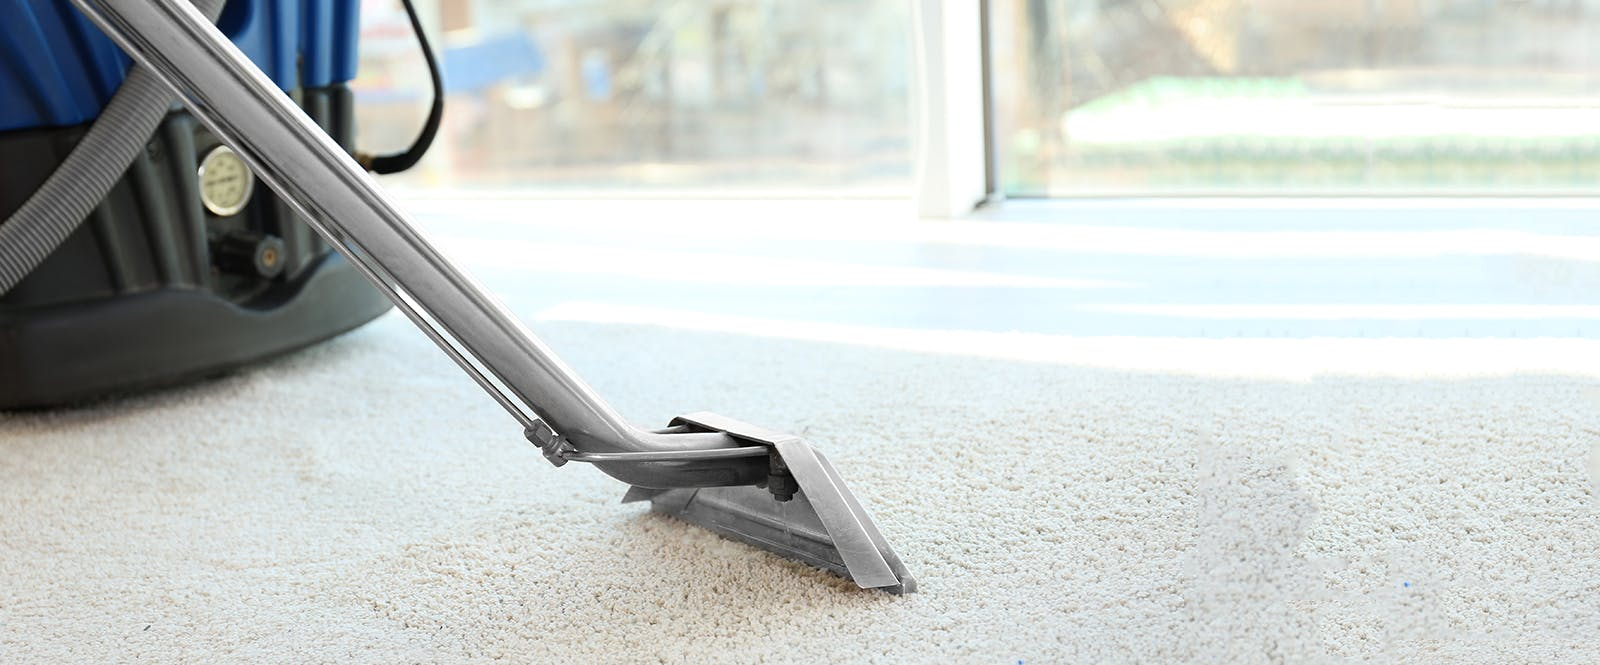 About our carpet cleaning service